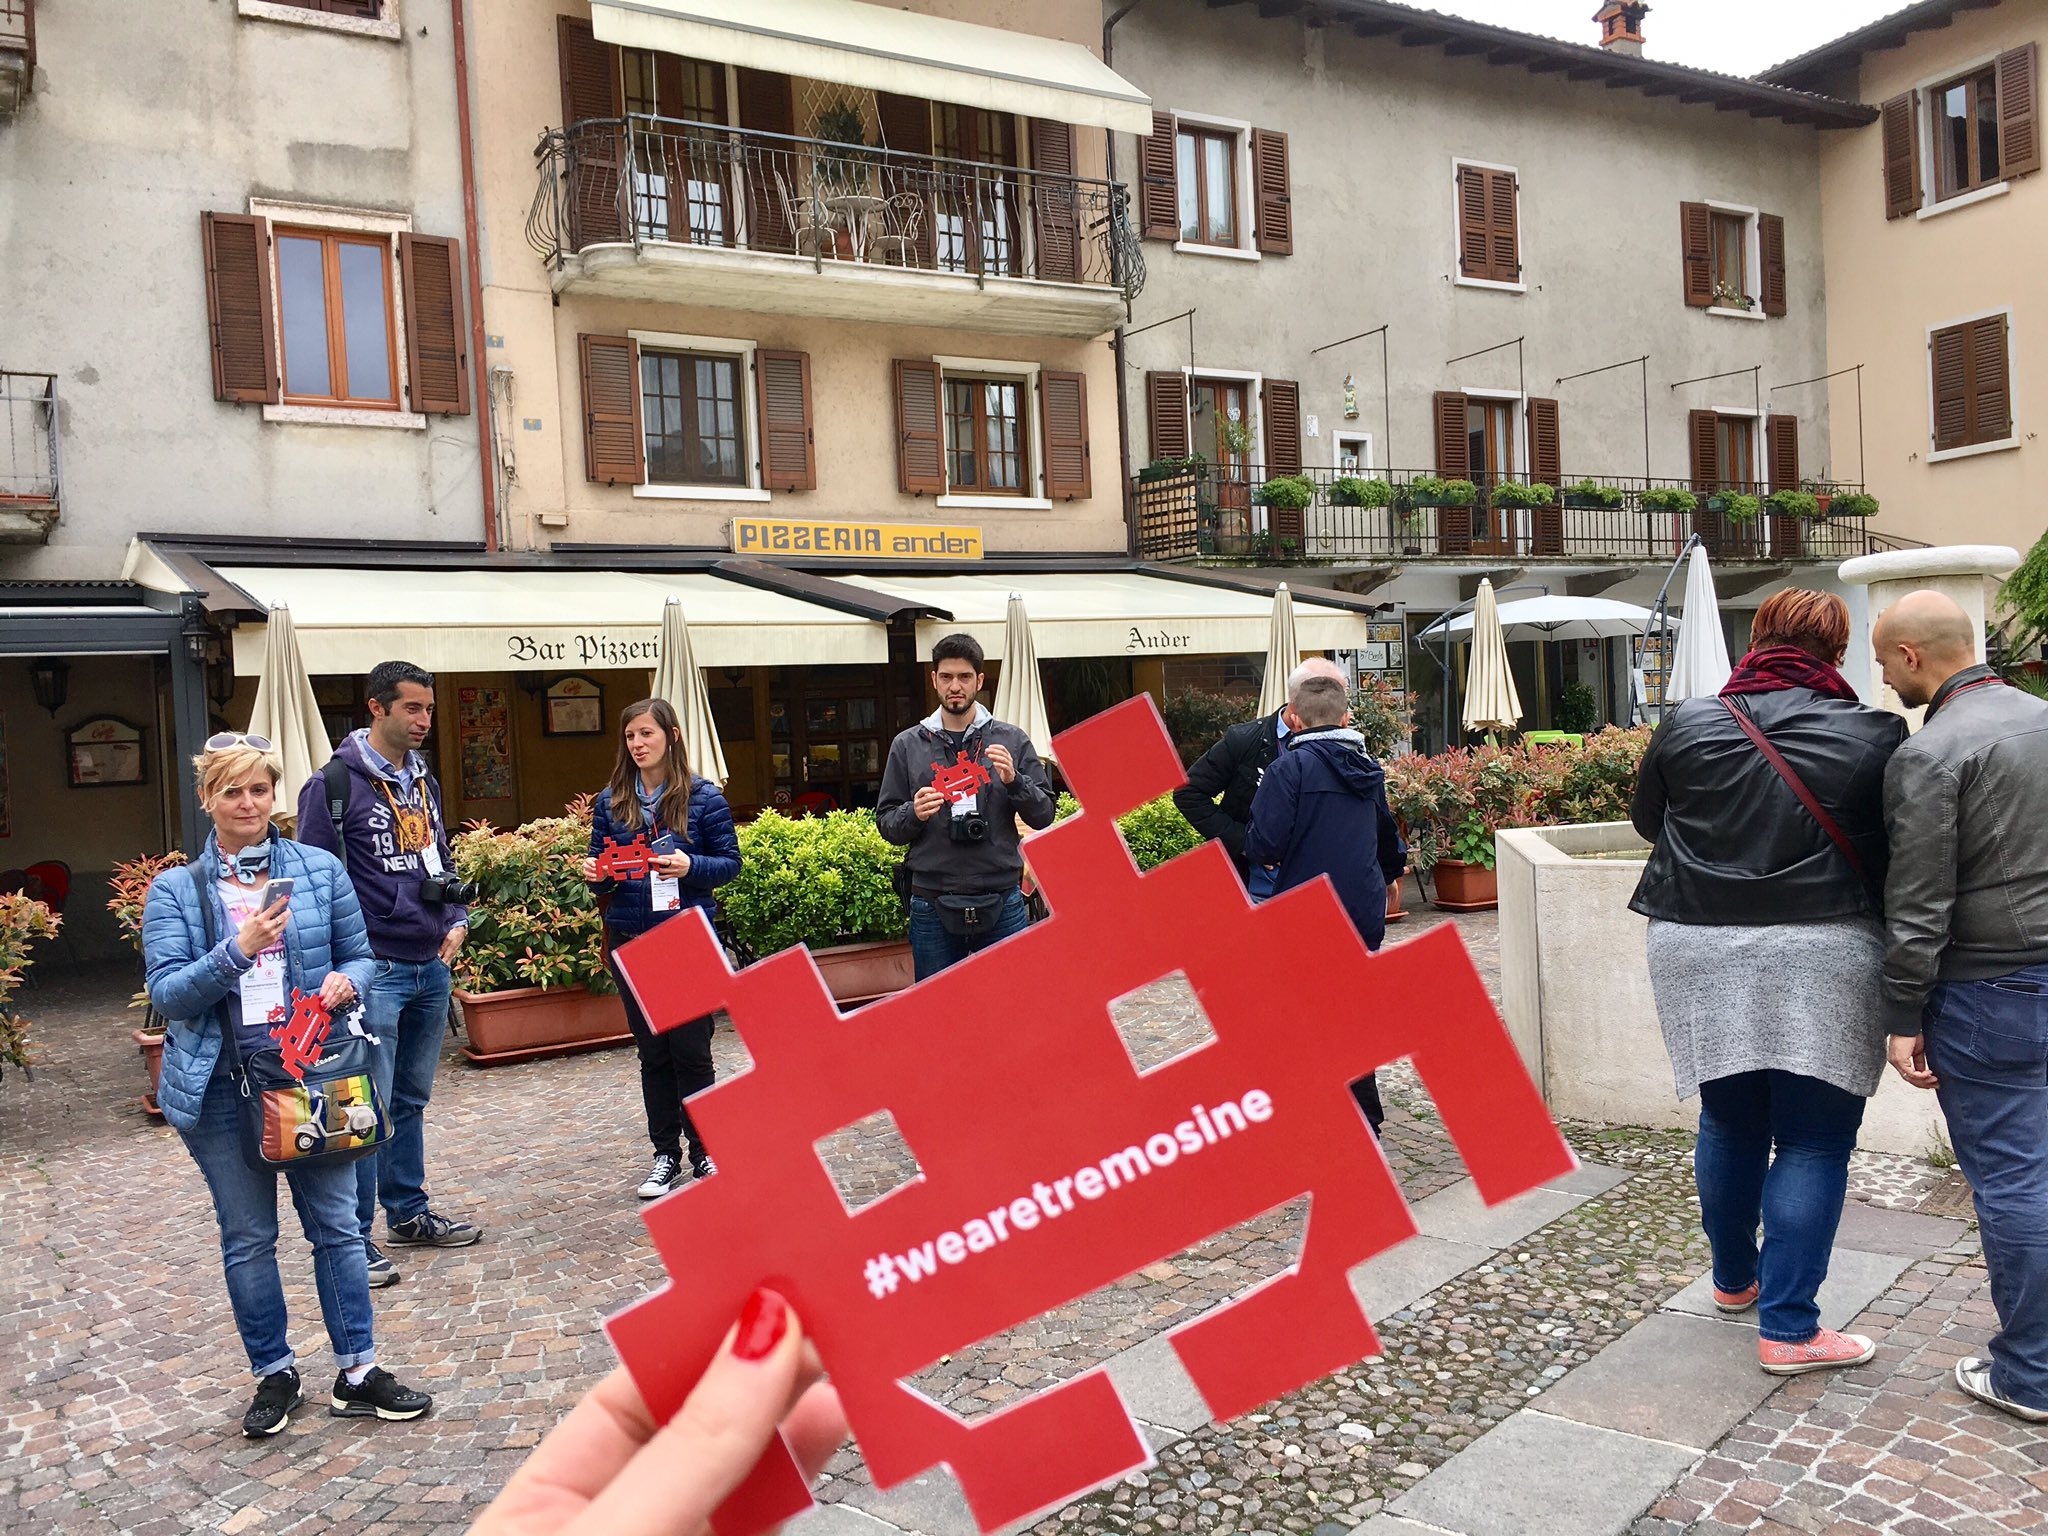 3, 2, 1....partenza! #wearetremosine #invasionidigitali https://t.co/UXJBwJ6pwB